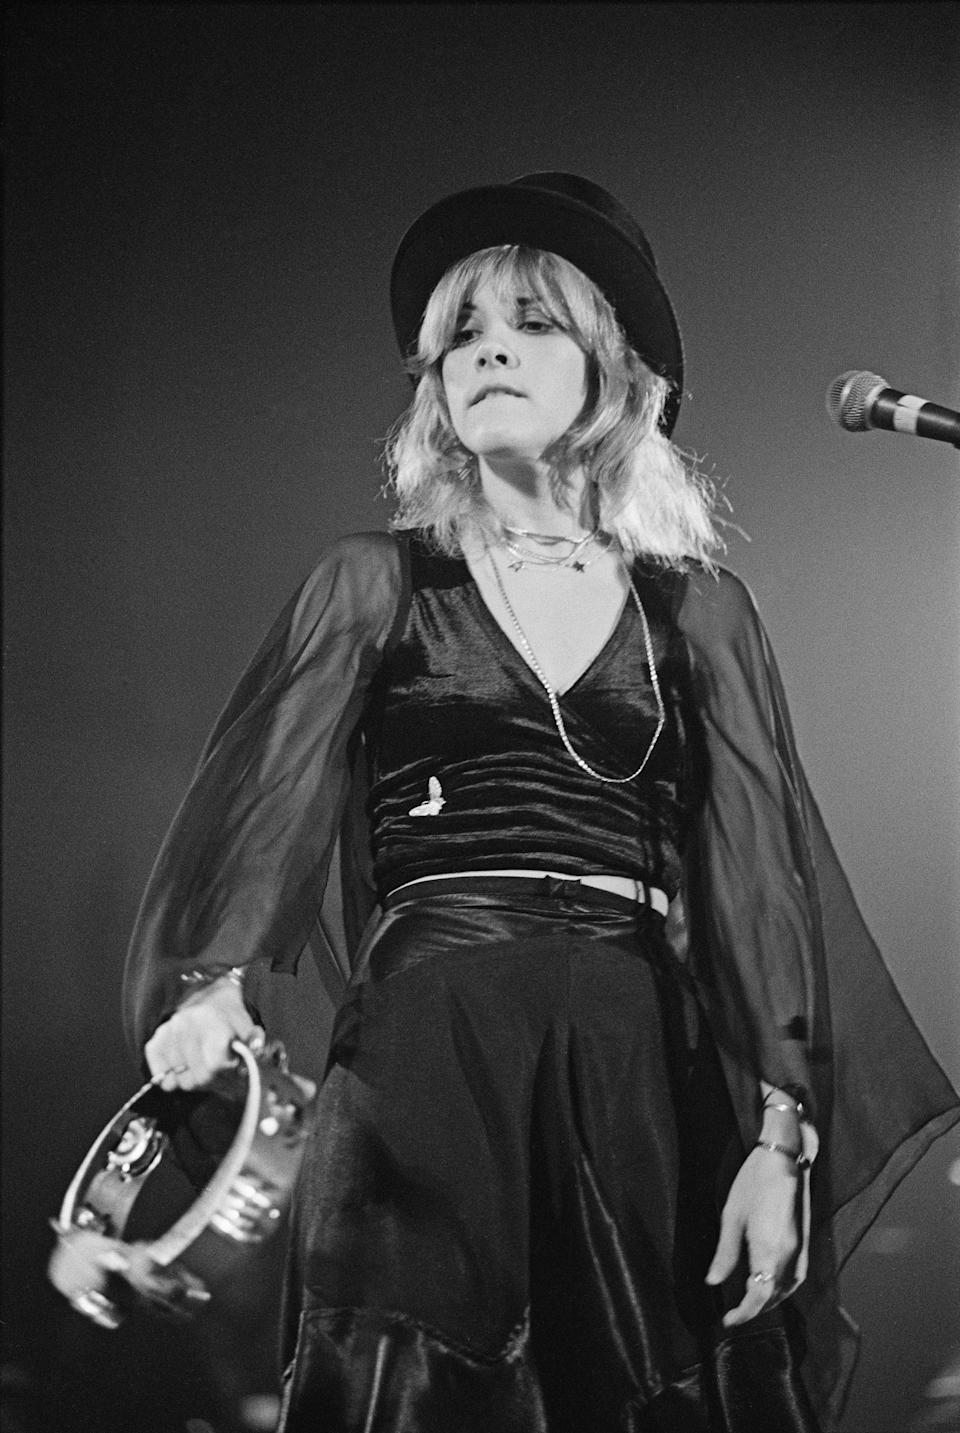 Stevie Nicks in 1975. (Photo: Fin Costello/Redferns/Getty Images)